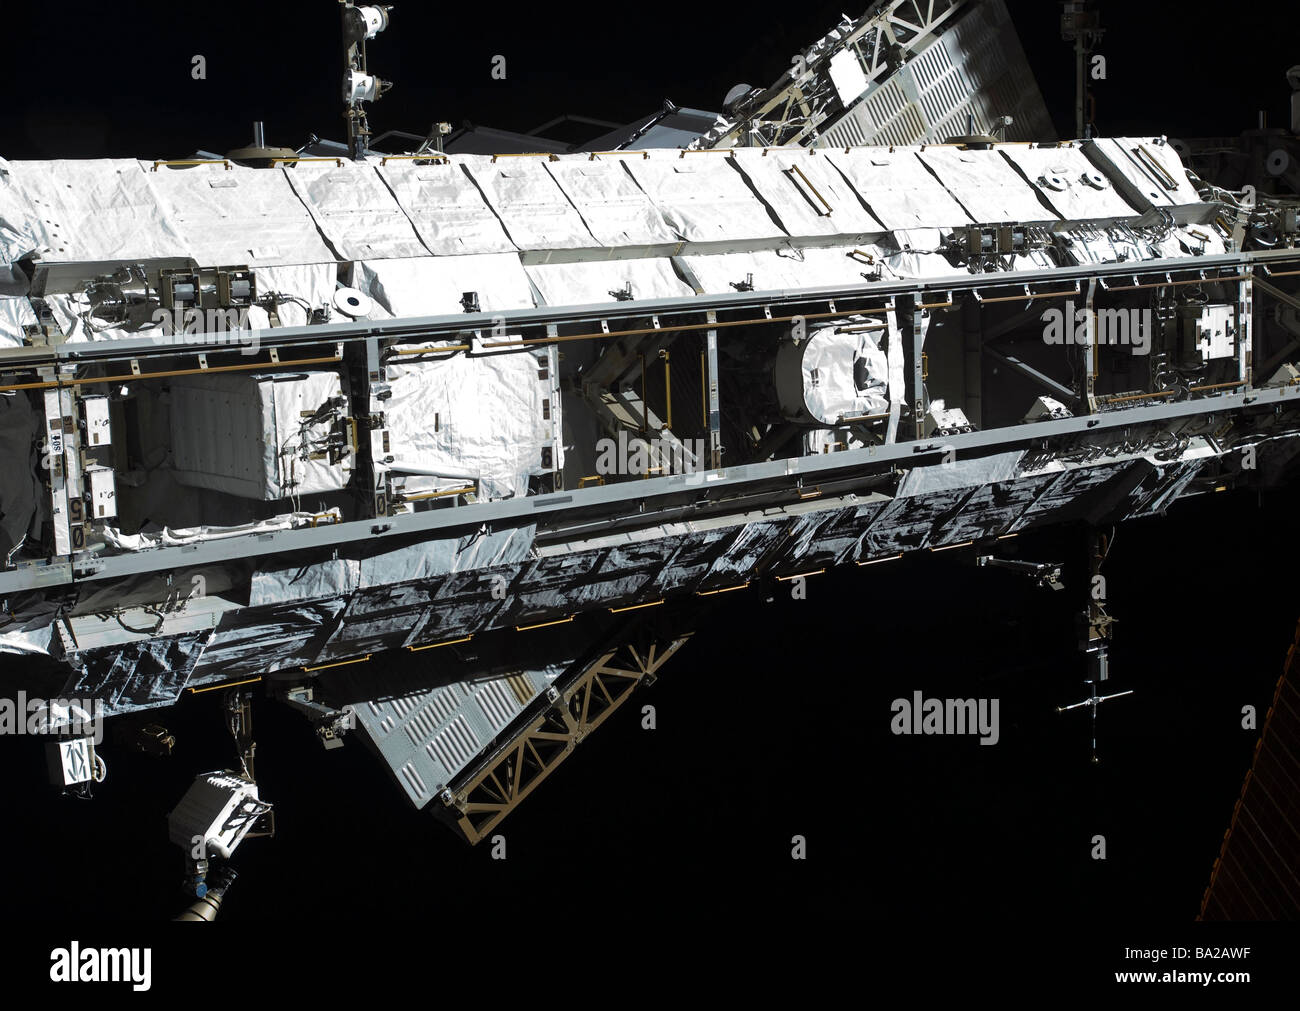 The International Space Station's starboard truss. - Stock Image